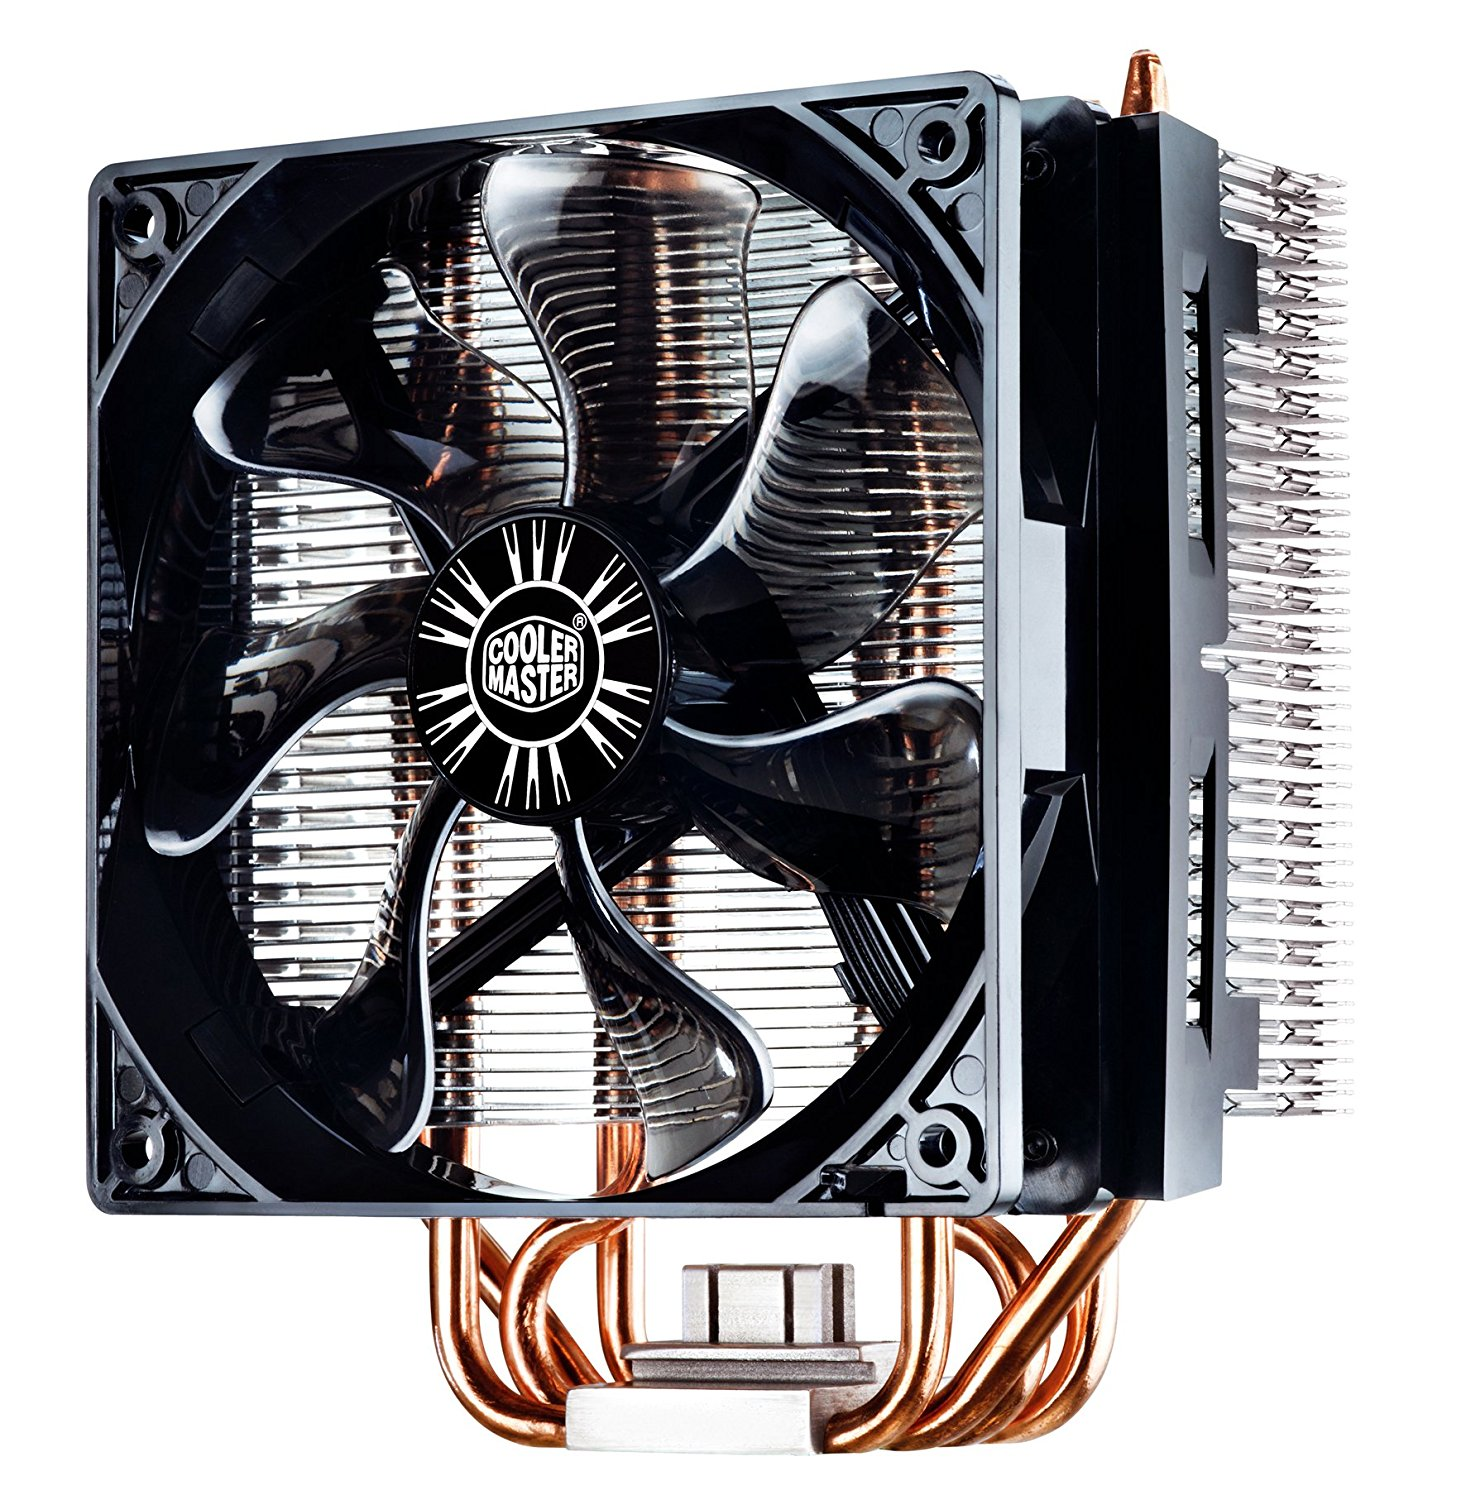 Cooler Master Hyper T4 CPU Cooler with 4 Direct Contact Heatpipes, INTEL/AMD with AM4 Support (RR-T4-18PK-R1)